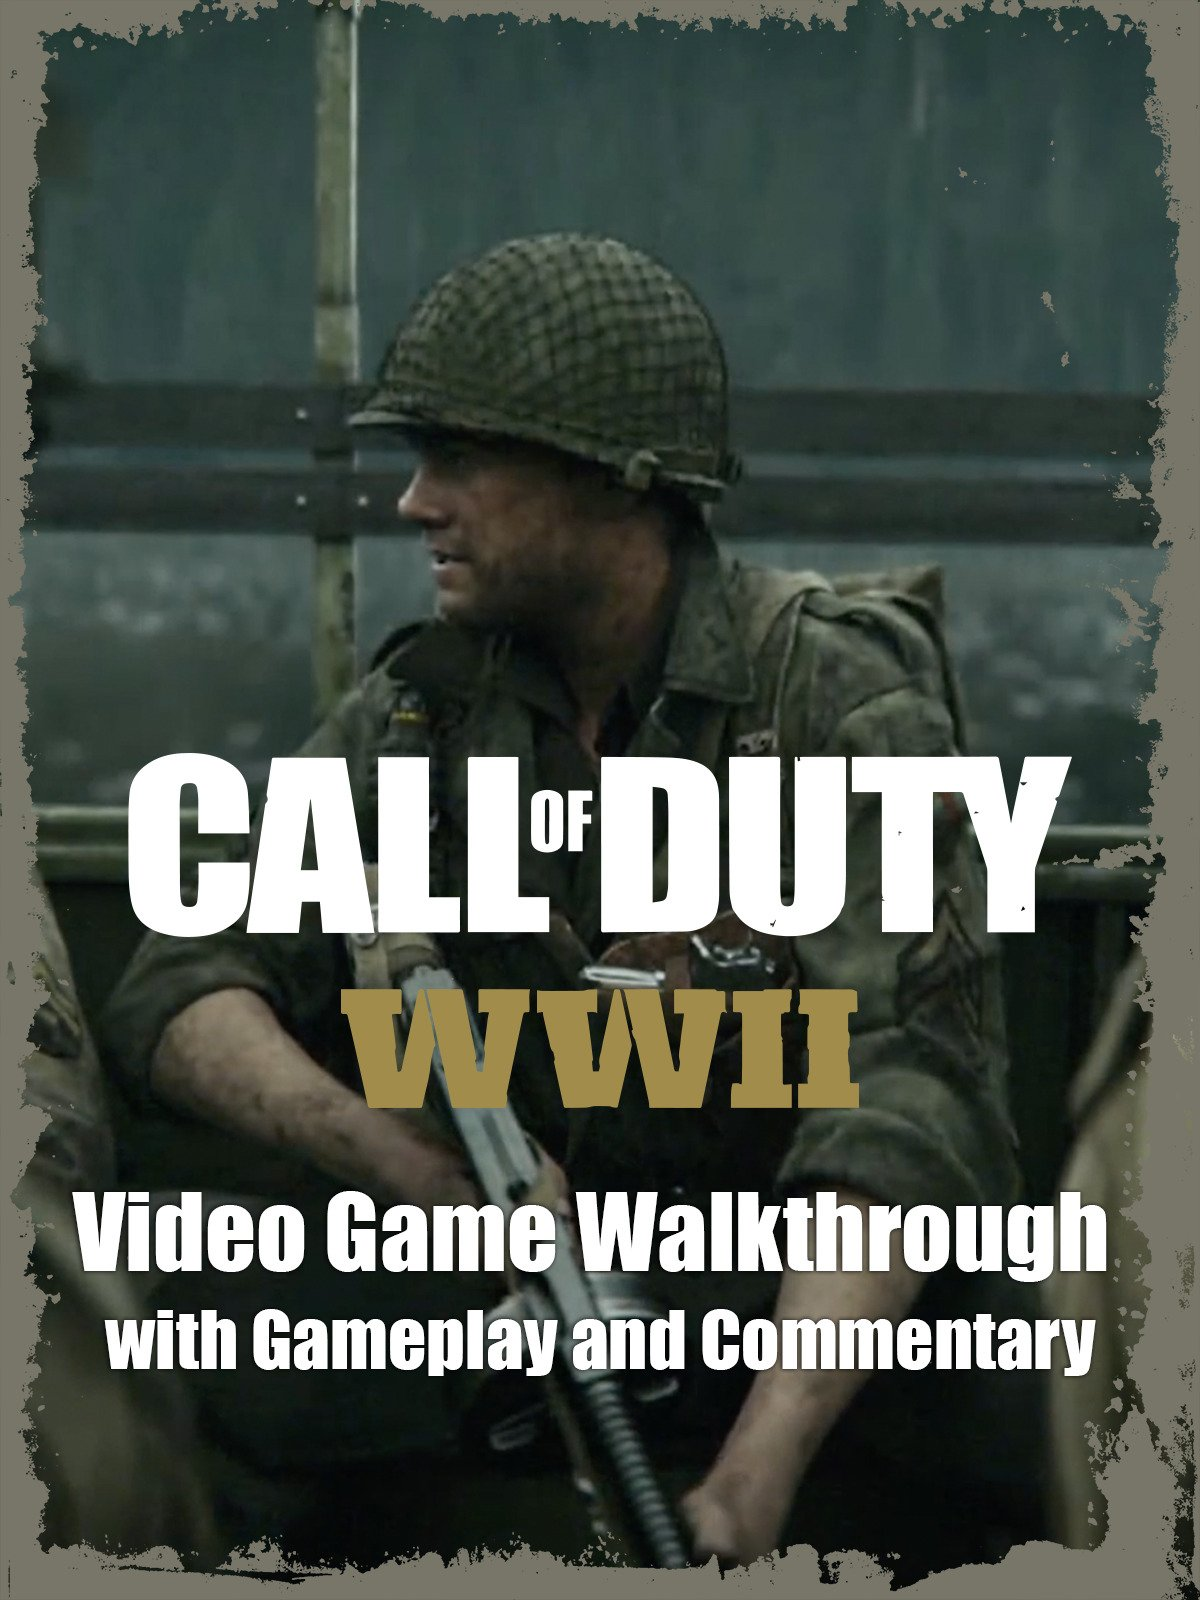 Clip: Call of Duty WWII Video Game Walkthrough with Gameplay and Commentary